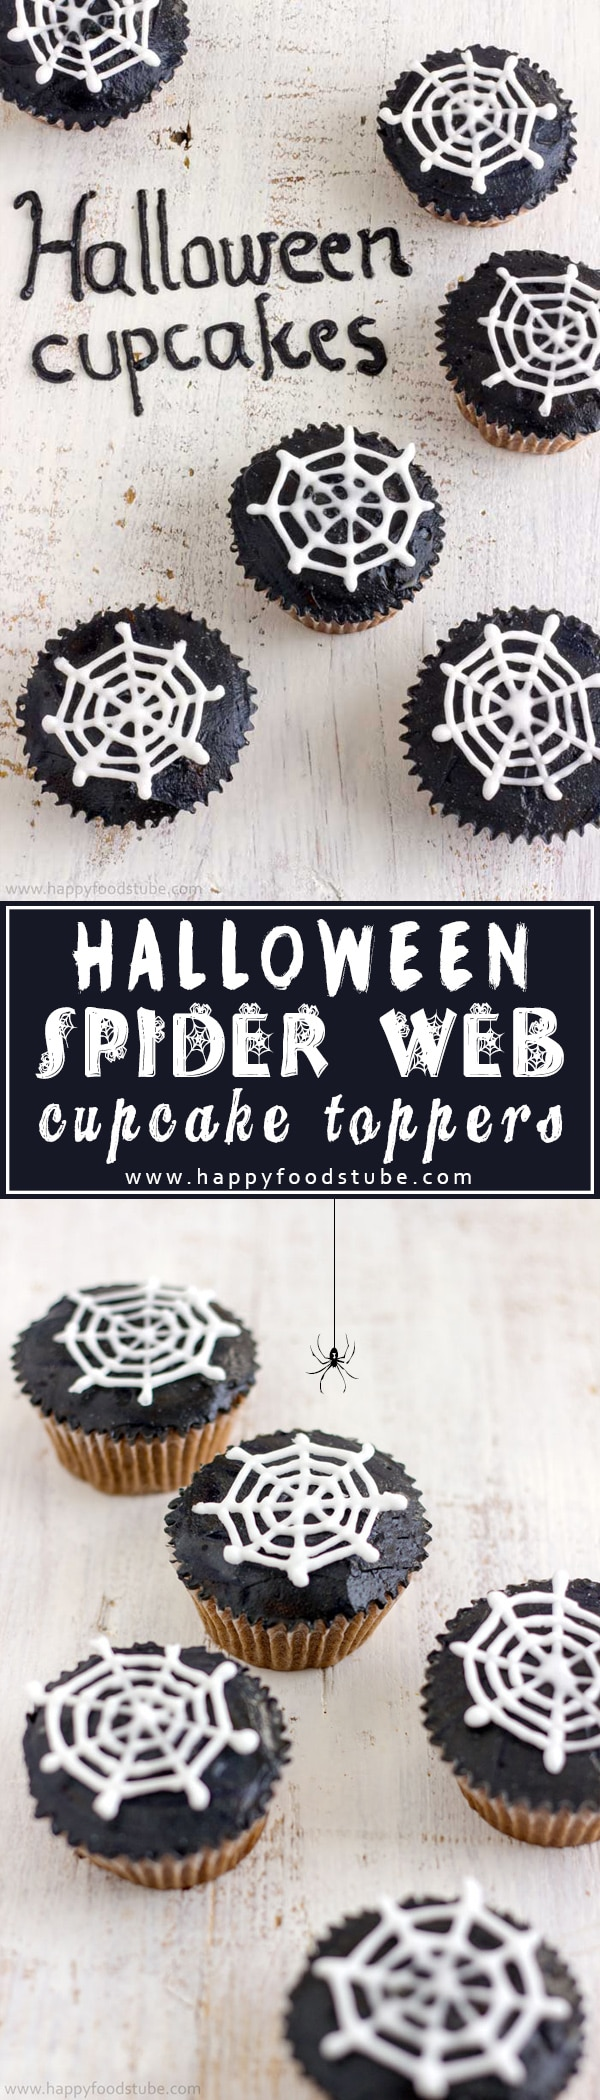 How to Make Halloween Spider Web Cupcake Toppers. Super Easy Cupcake Decorating Tutorial. They are made with royal icing and you need only simple tools. No template needed. #halloween #cupcakes #spiderweb